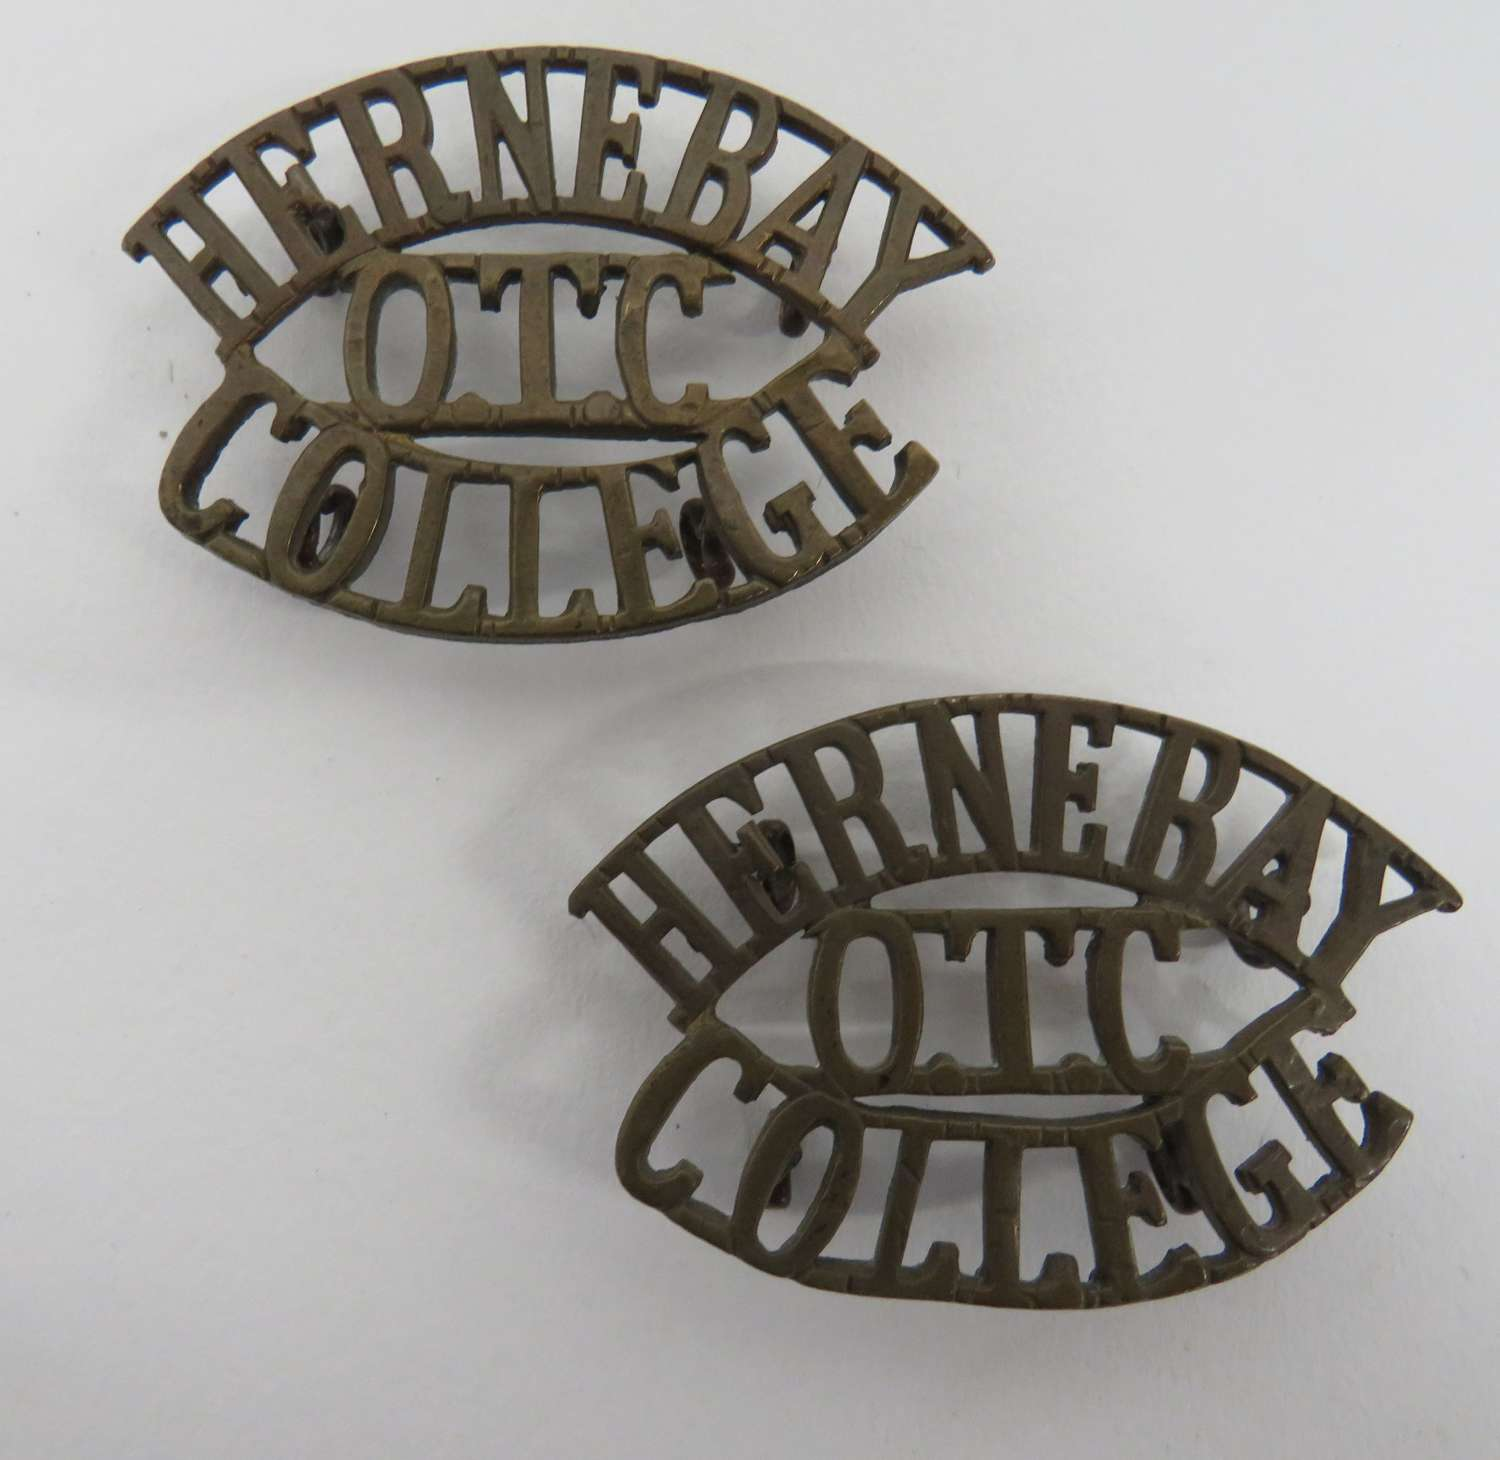 Pair of Hernebay College O.T.C Shoulder Titles